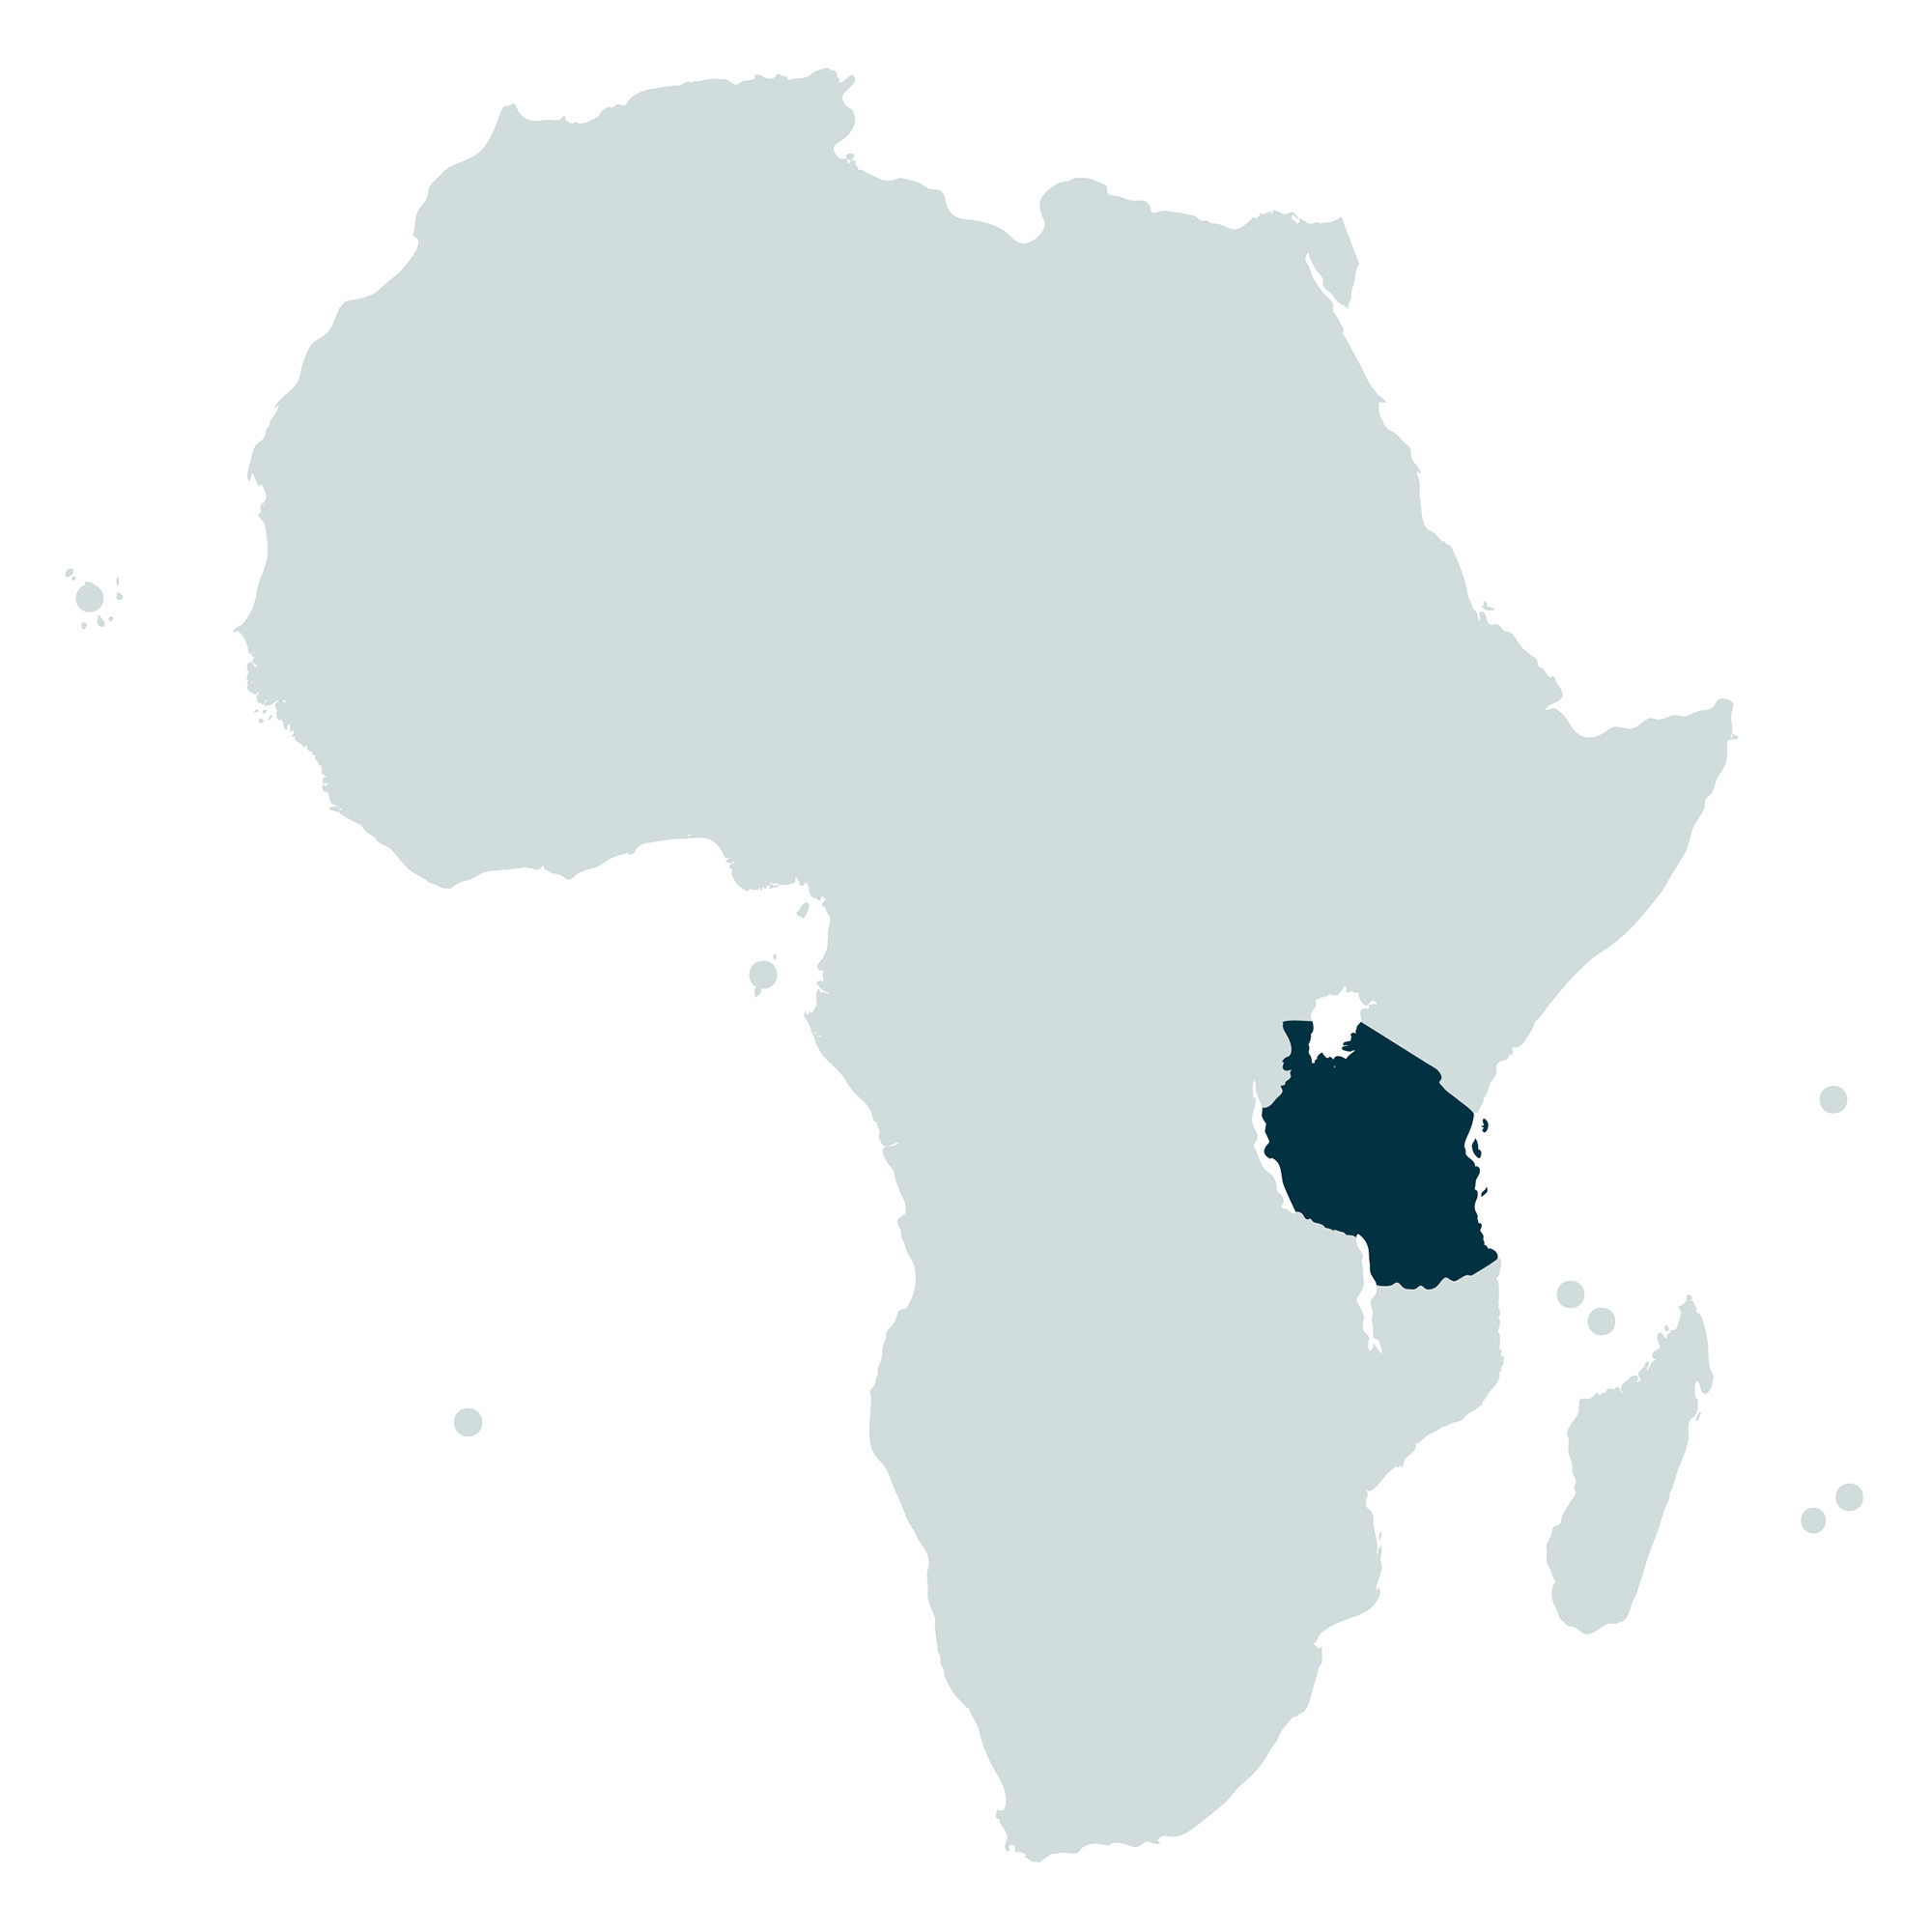 - Tanzania has only recently become recognised for its specialty coffees. With increasingly better infrastructure, access to washing stations and farmer organization, Tanzania is now consistently producing high-quality specialty-grade coffees. More than 90% of Tanzania's coffee is produced by 400,000 smallholder farmers.